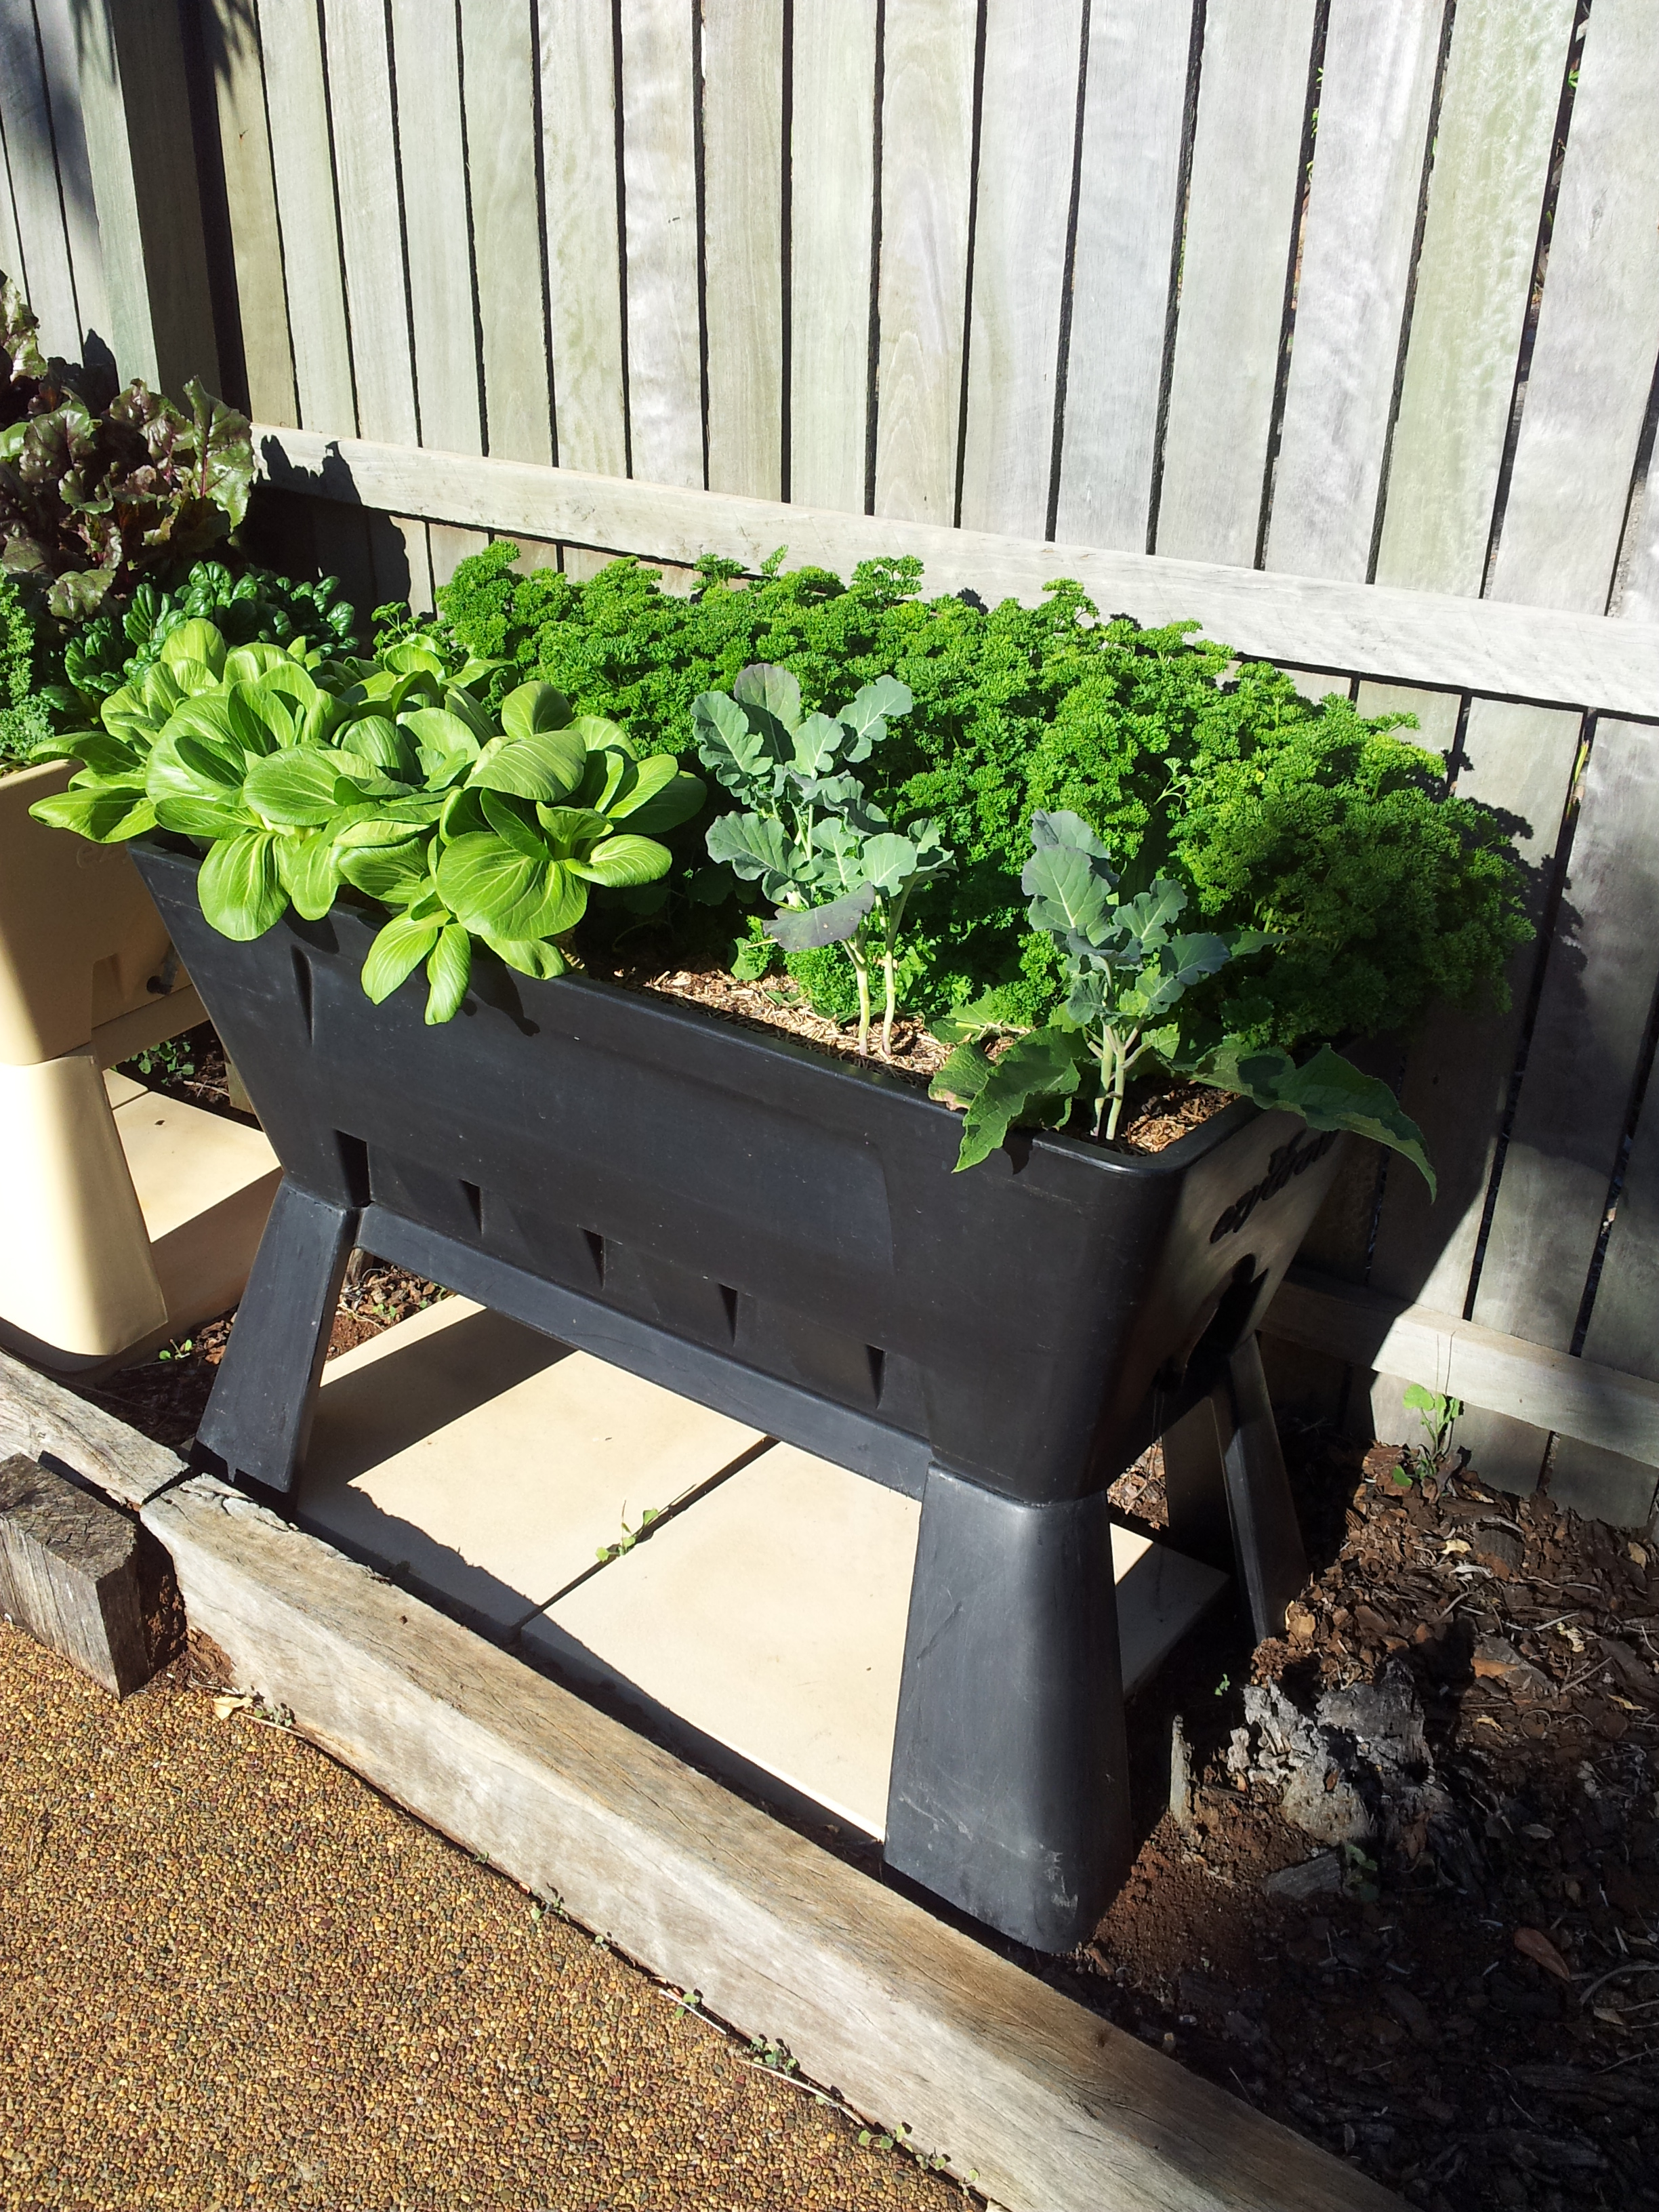 Garden Easi Planter Box in Black 2